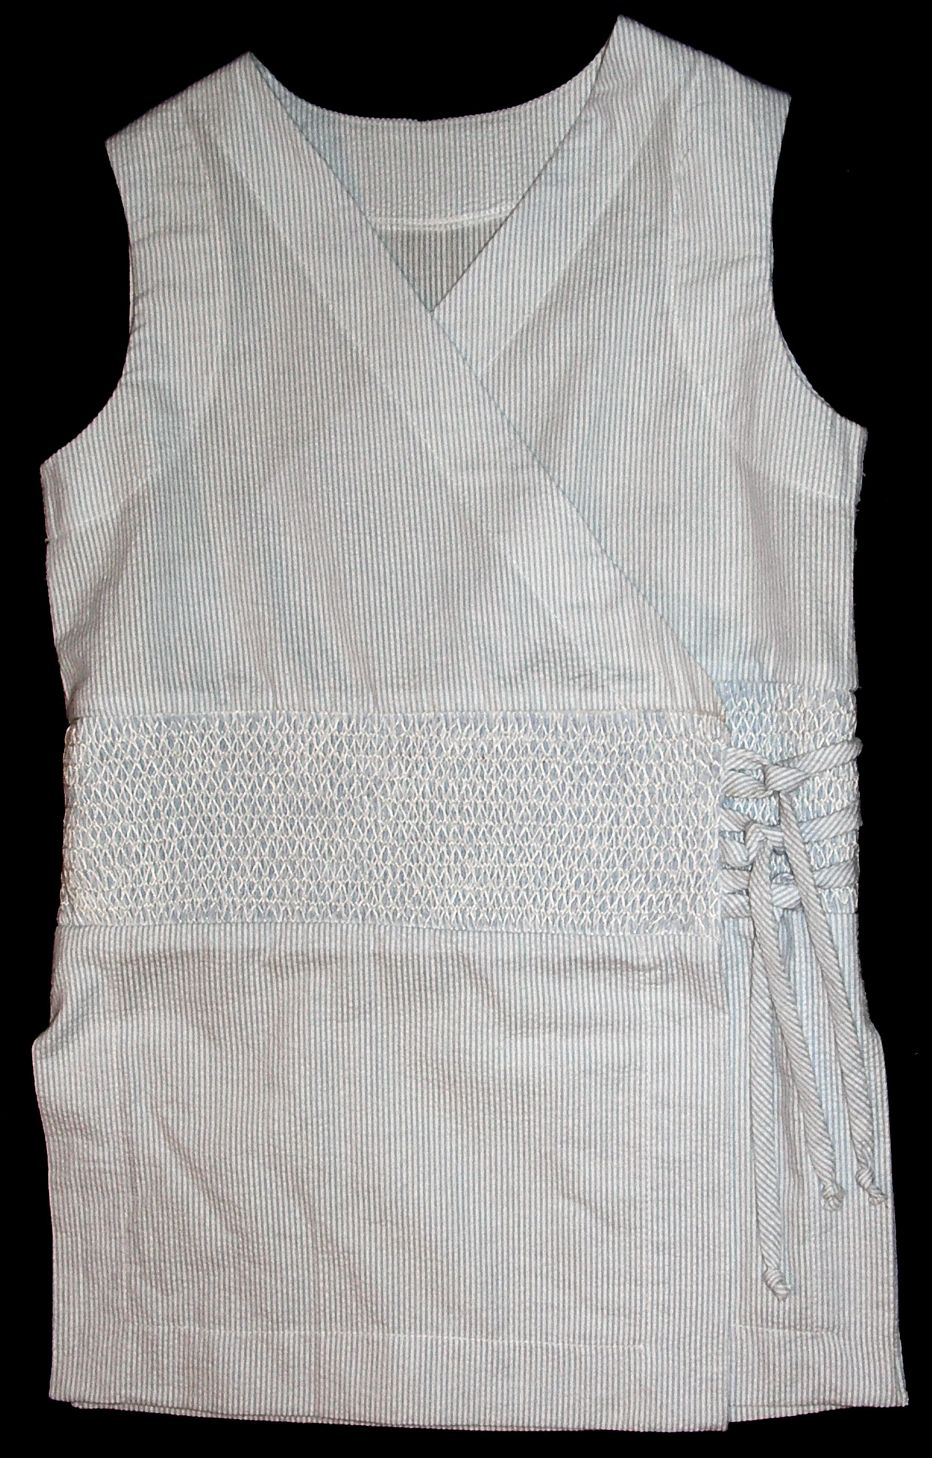 Suit with Hand Smocked Insert - Tessa